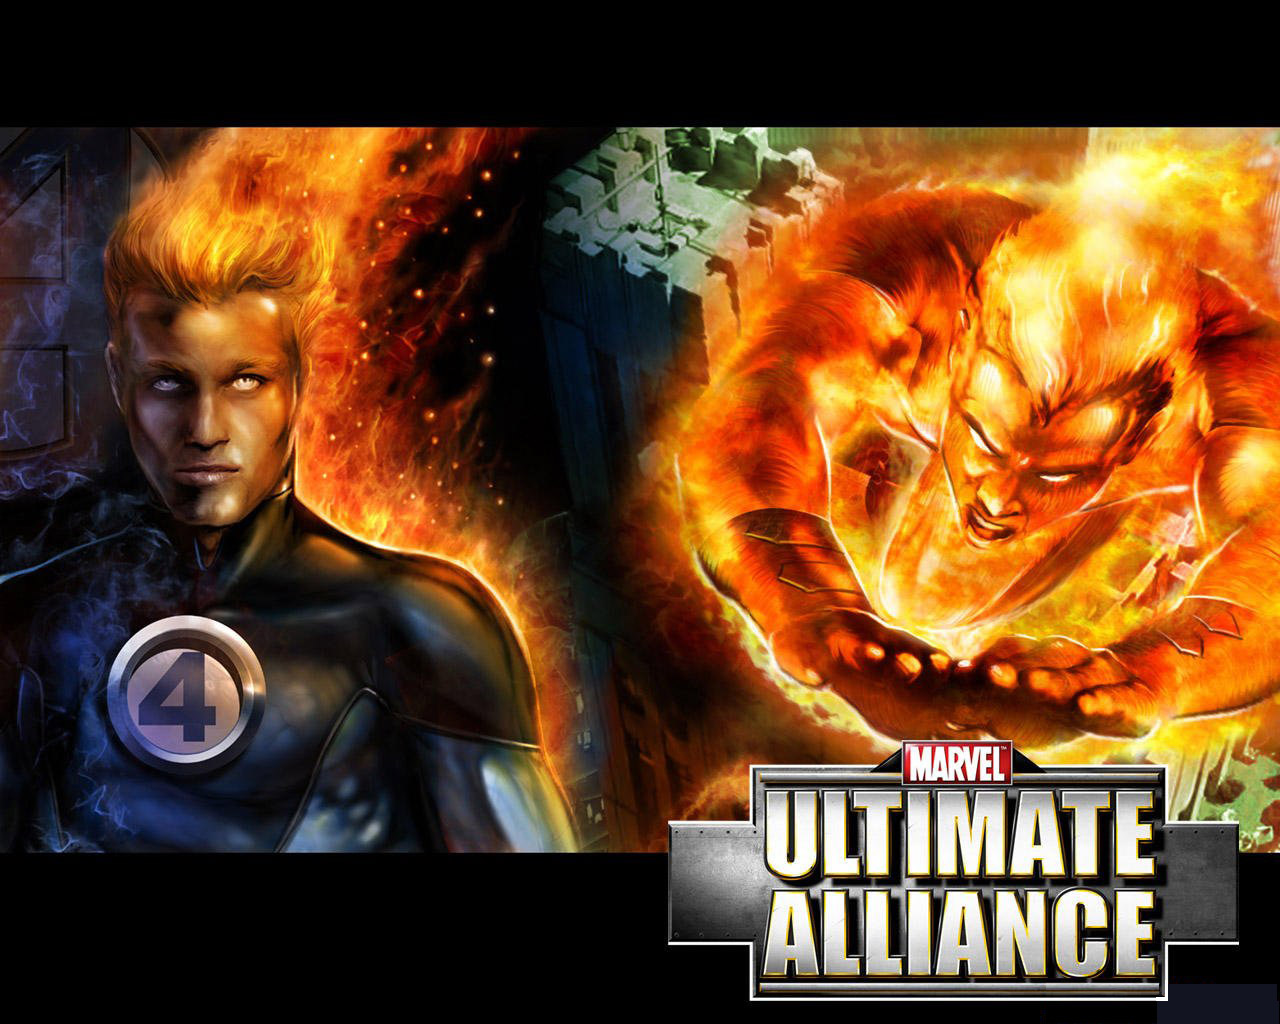 wallpaper alliance ultimate - photo #21